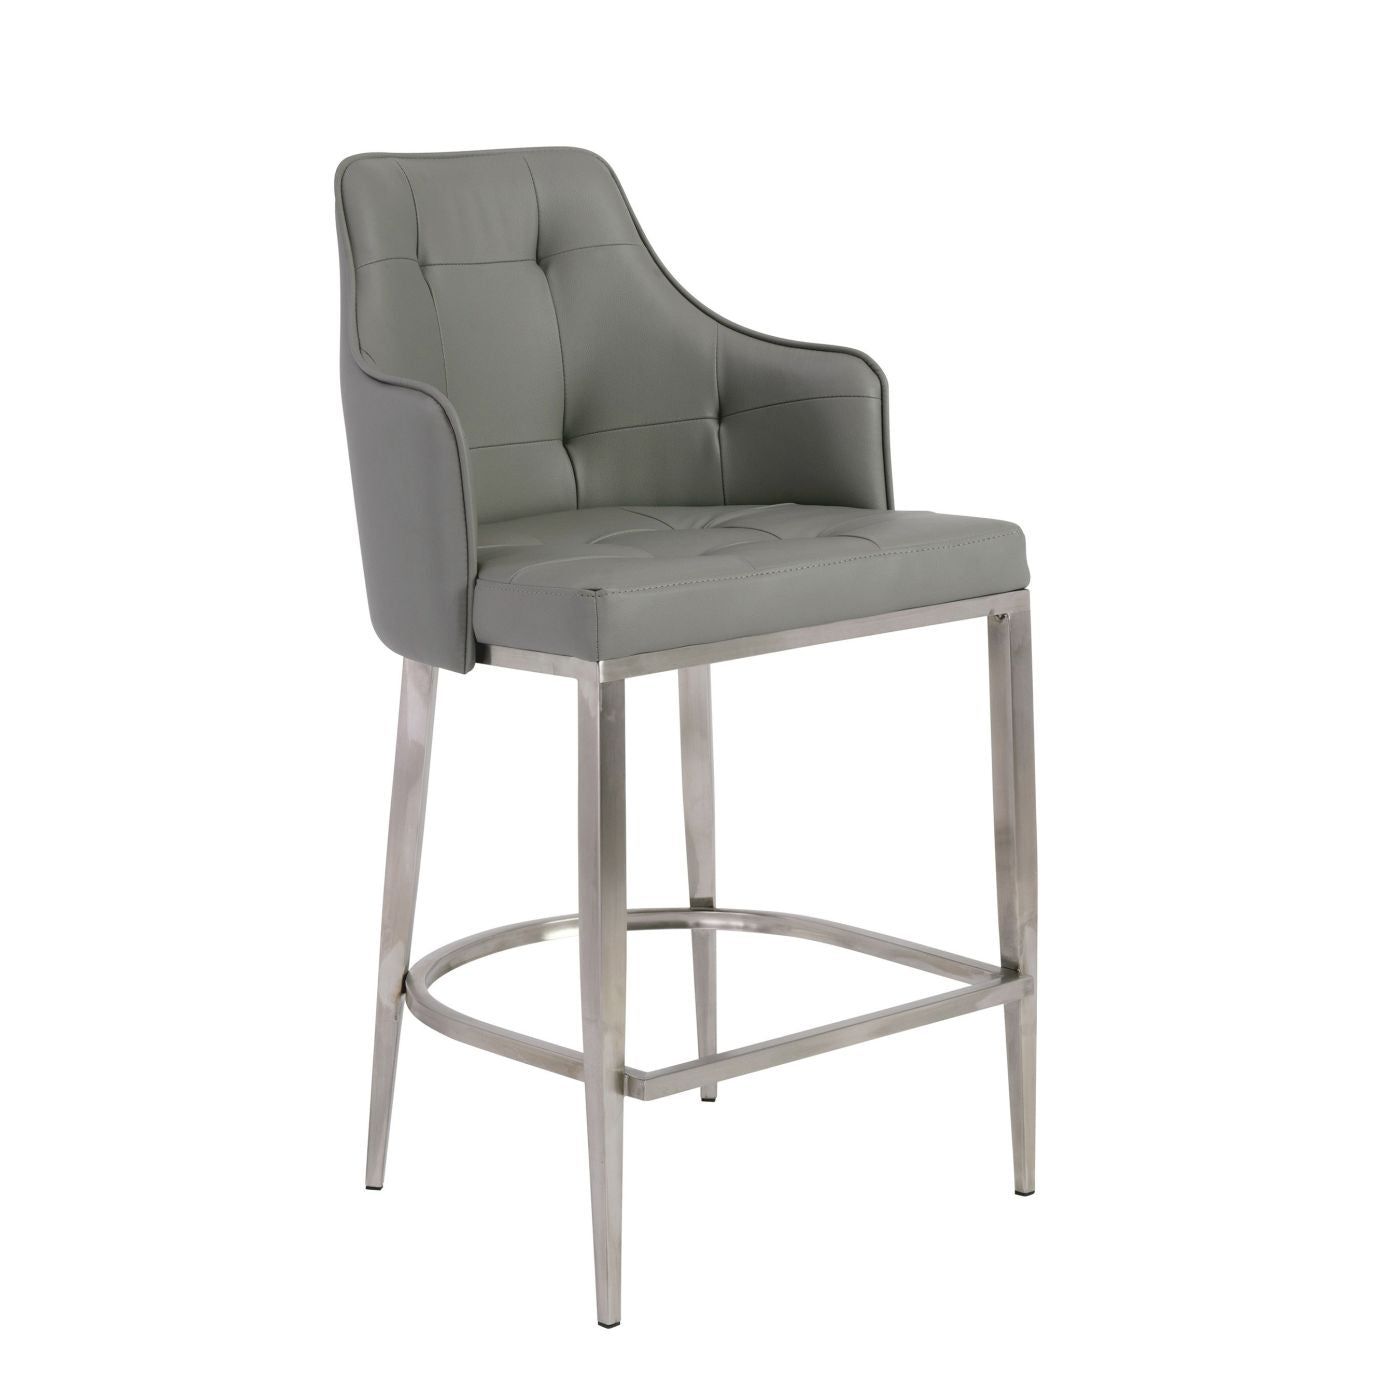 Phenomenal Aaron Bar Stool In Gray With Brushed Stainless Steel Legs Creativecarmelina Interior Chair Design Creativecarmelinacom